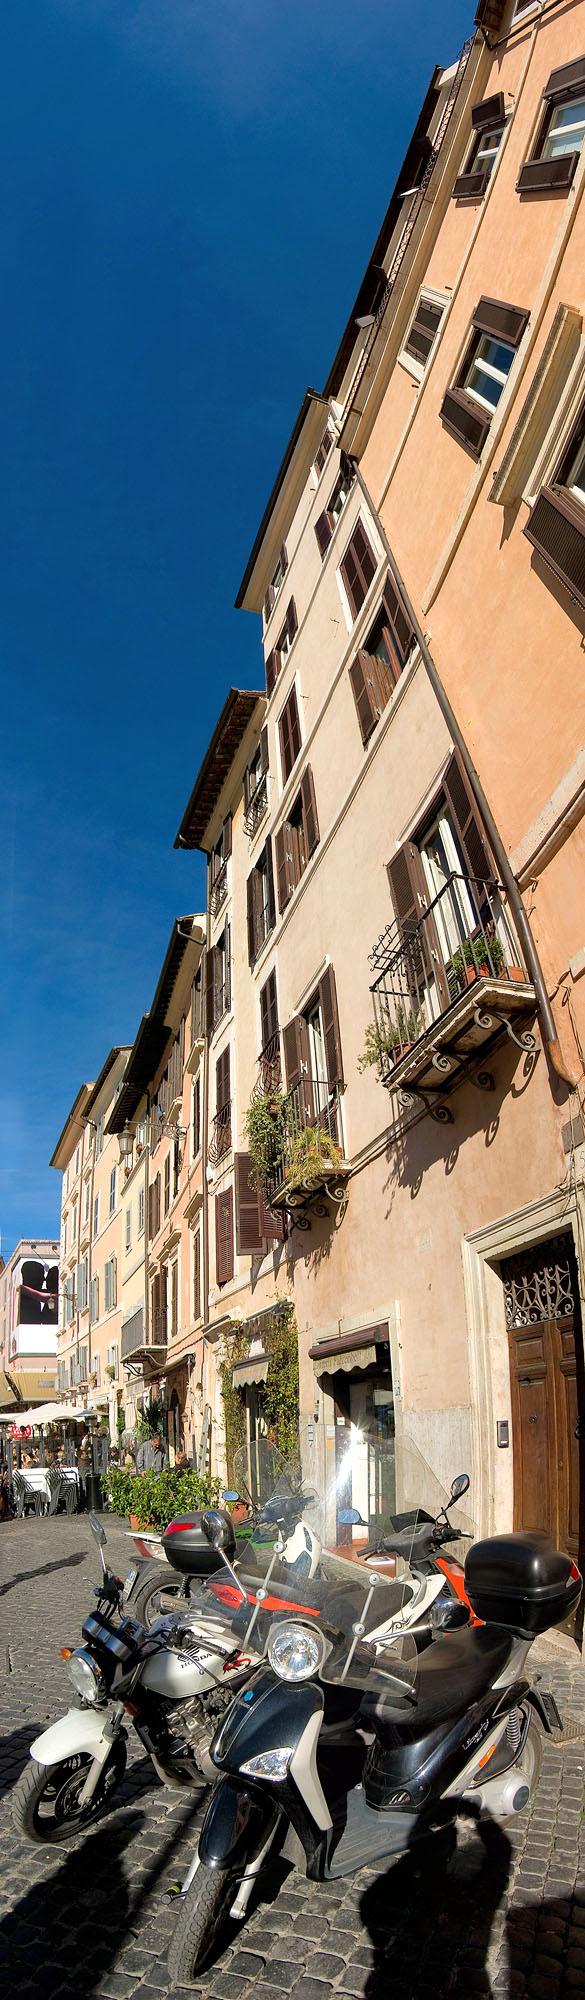 Bikes and house fronts at Campo de Fiori